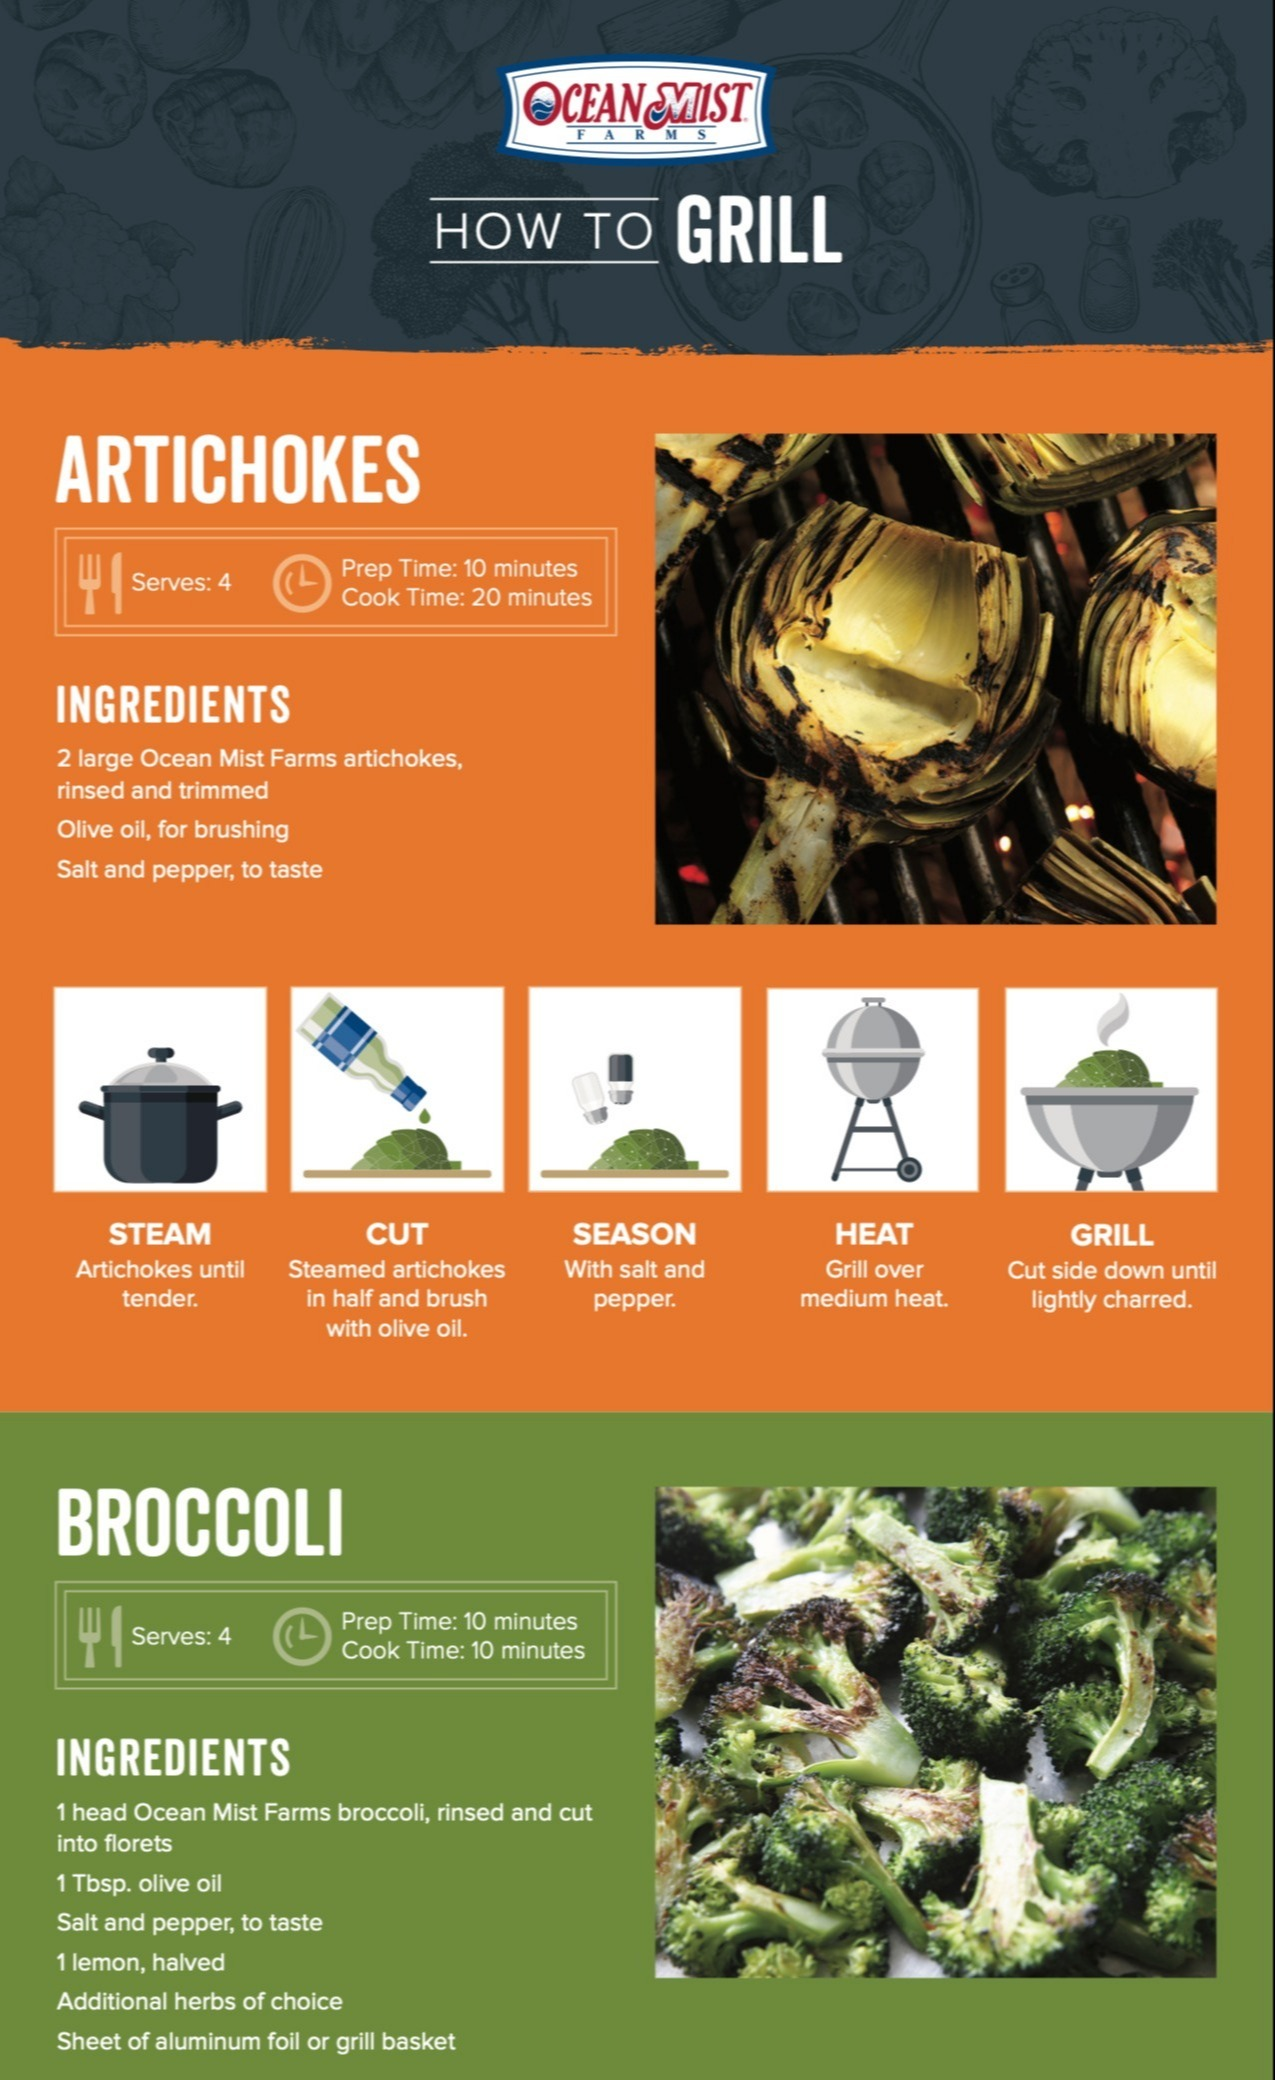 OM_How-to-Grill_Infographic2-Jul-16-2020-03-24-49-36-PM-1-1